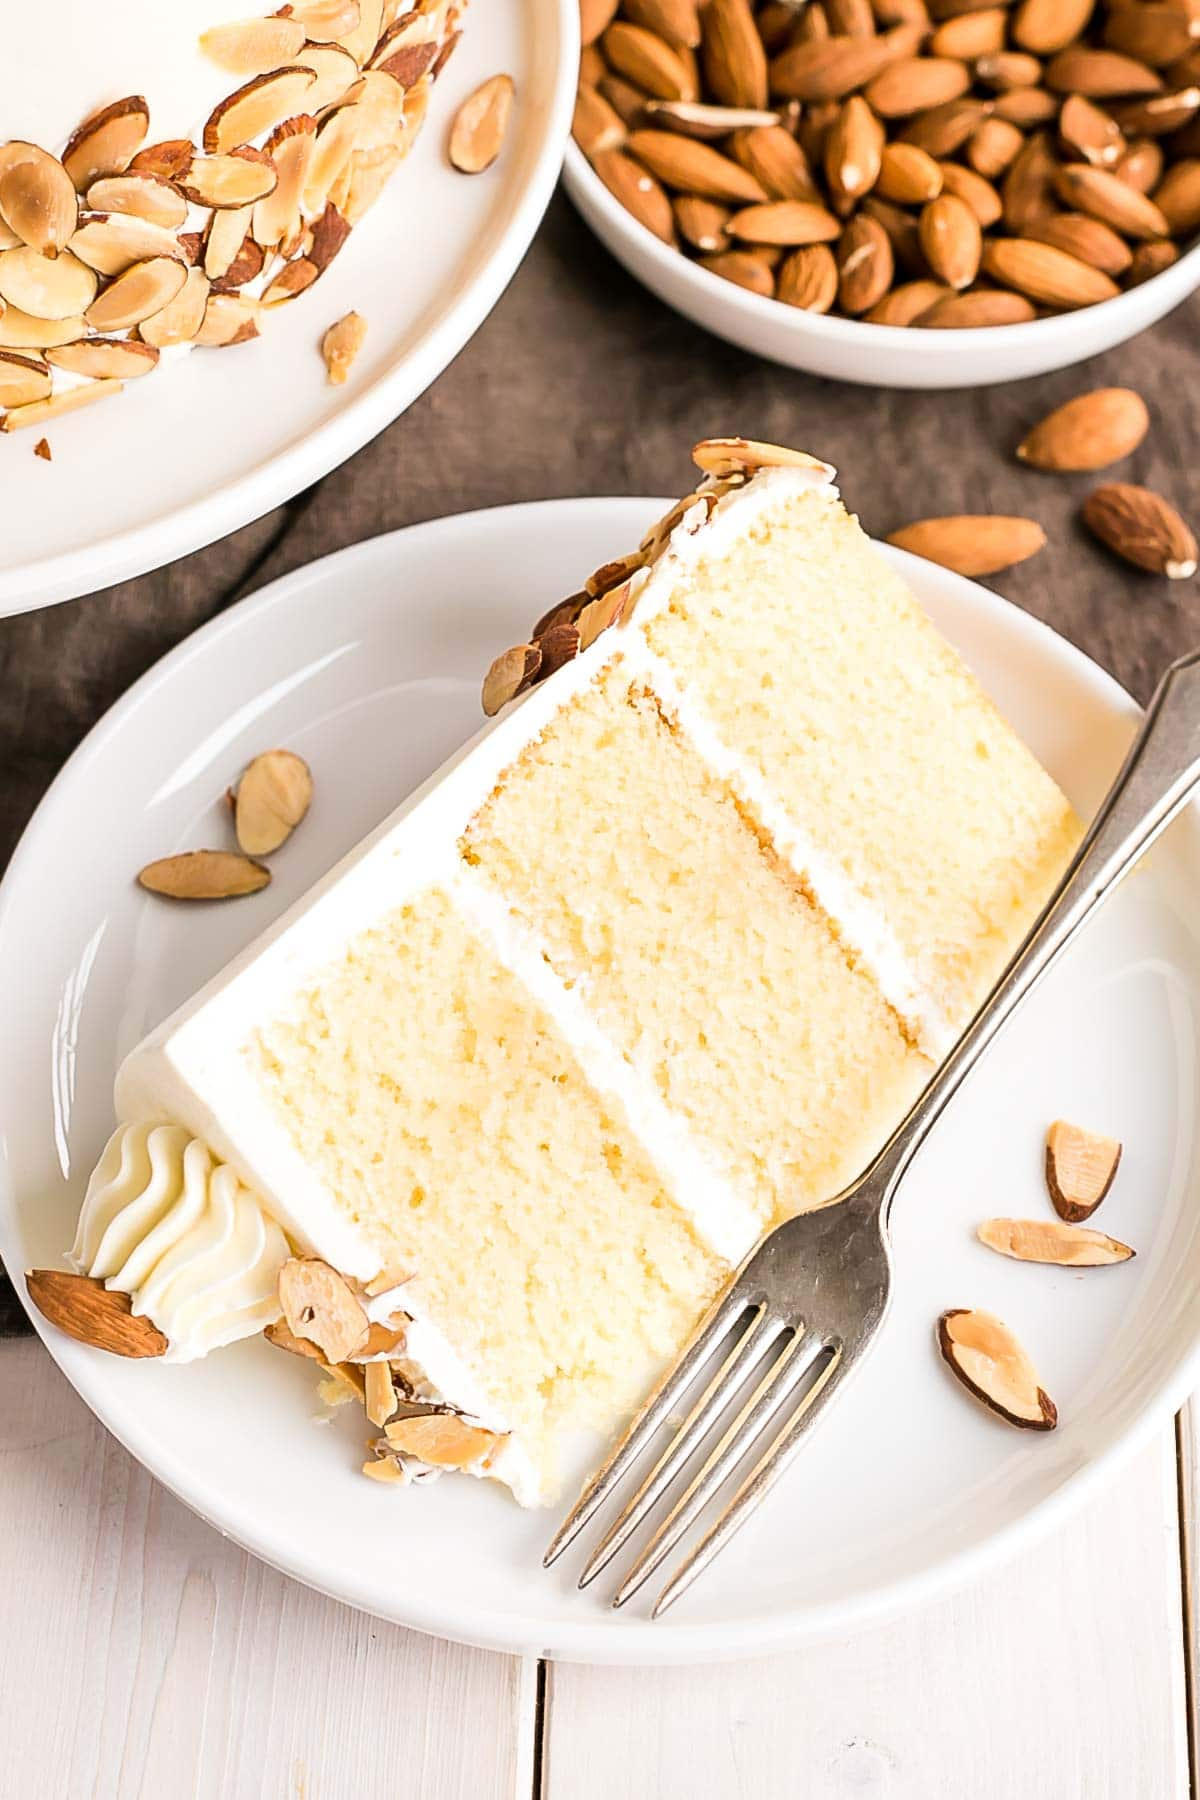 Cut slice of Almond Amaretto Cake.